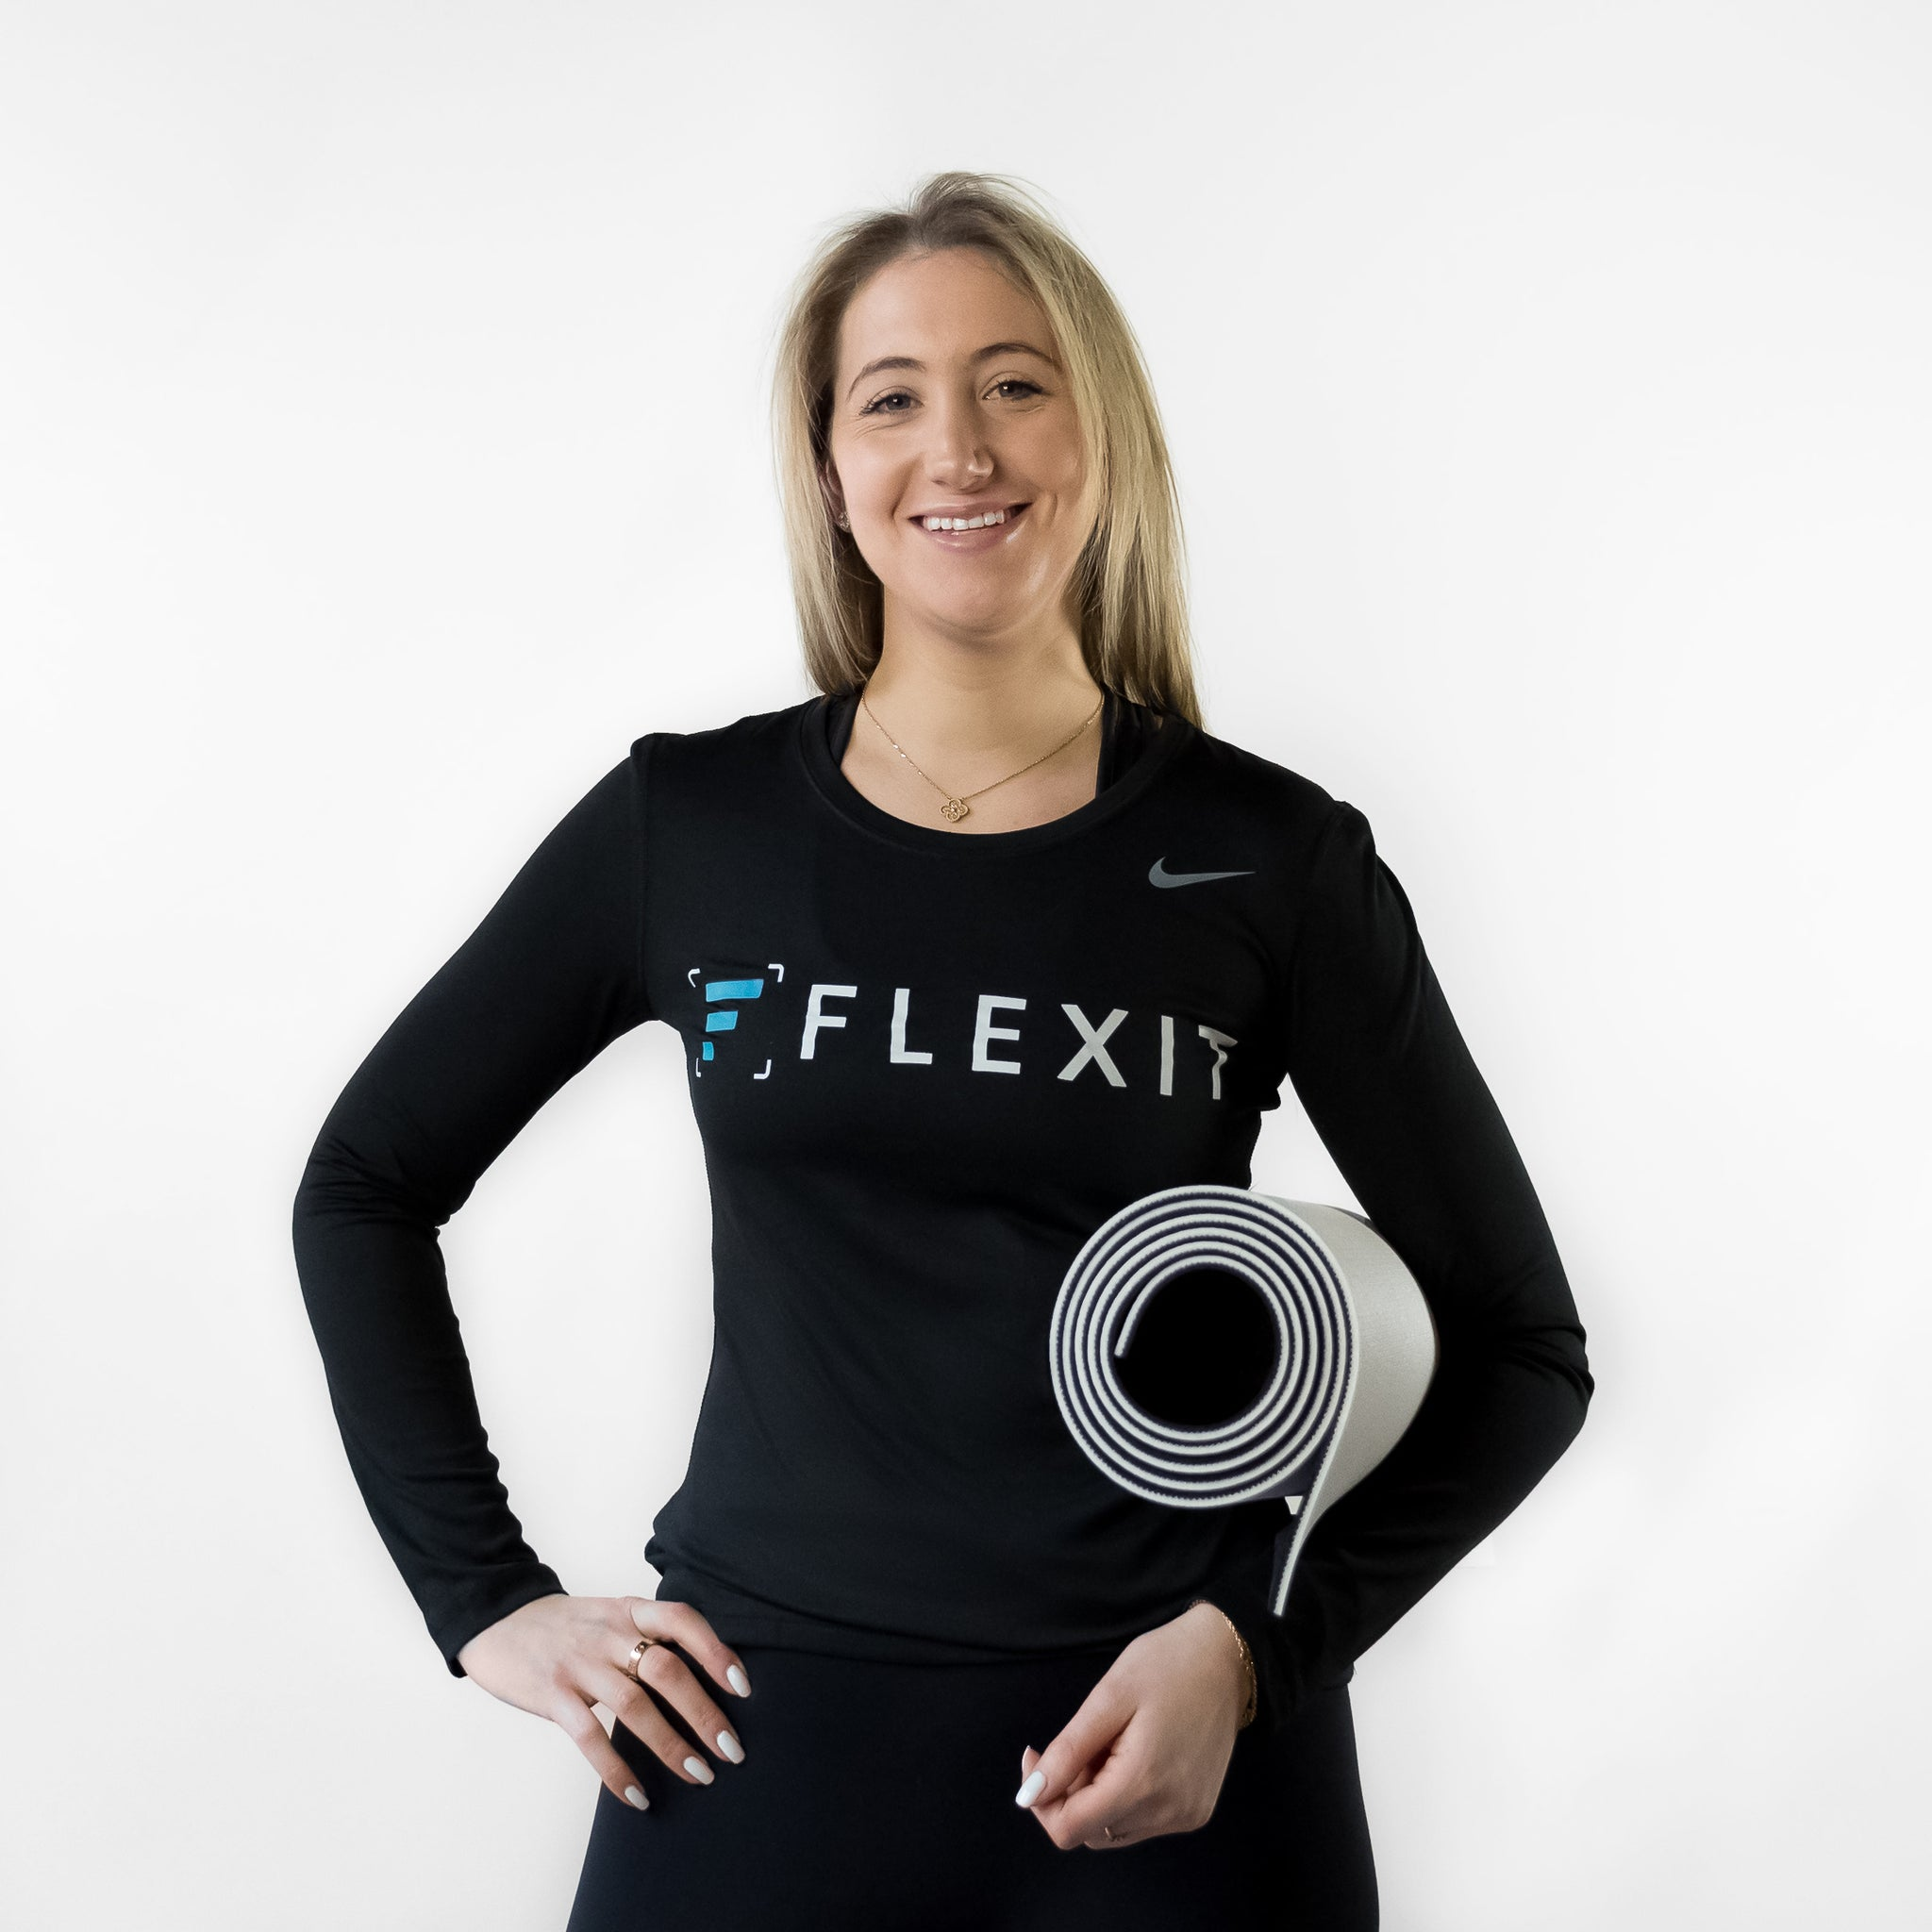 Woman holding FlexIt yoga mat in hand.